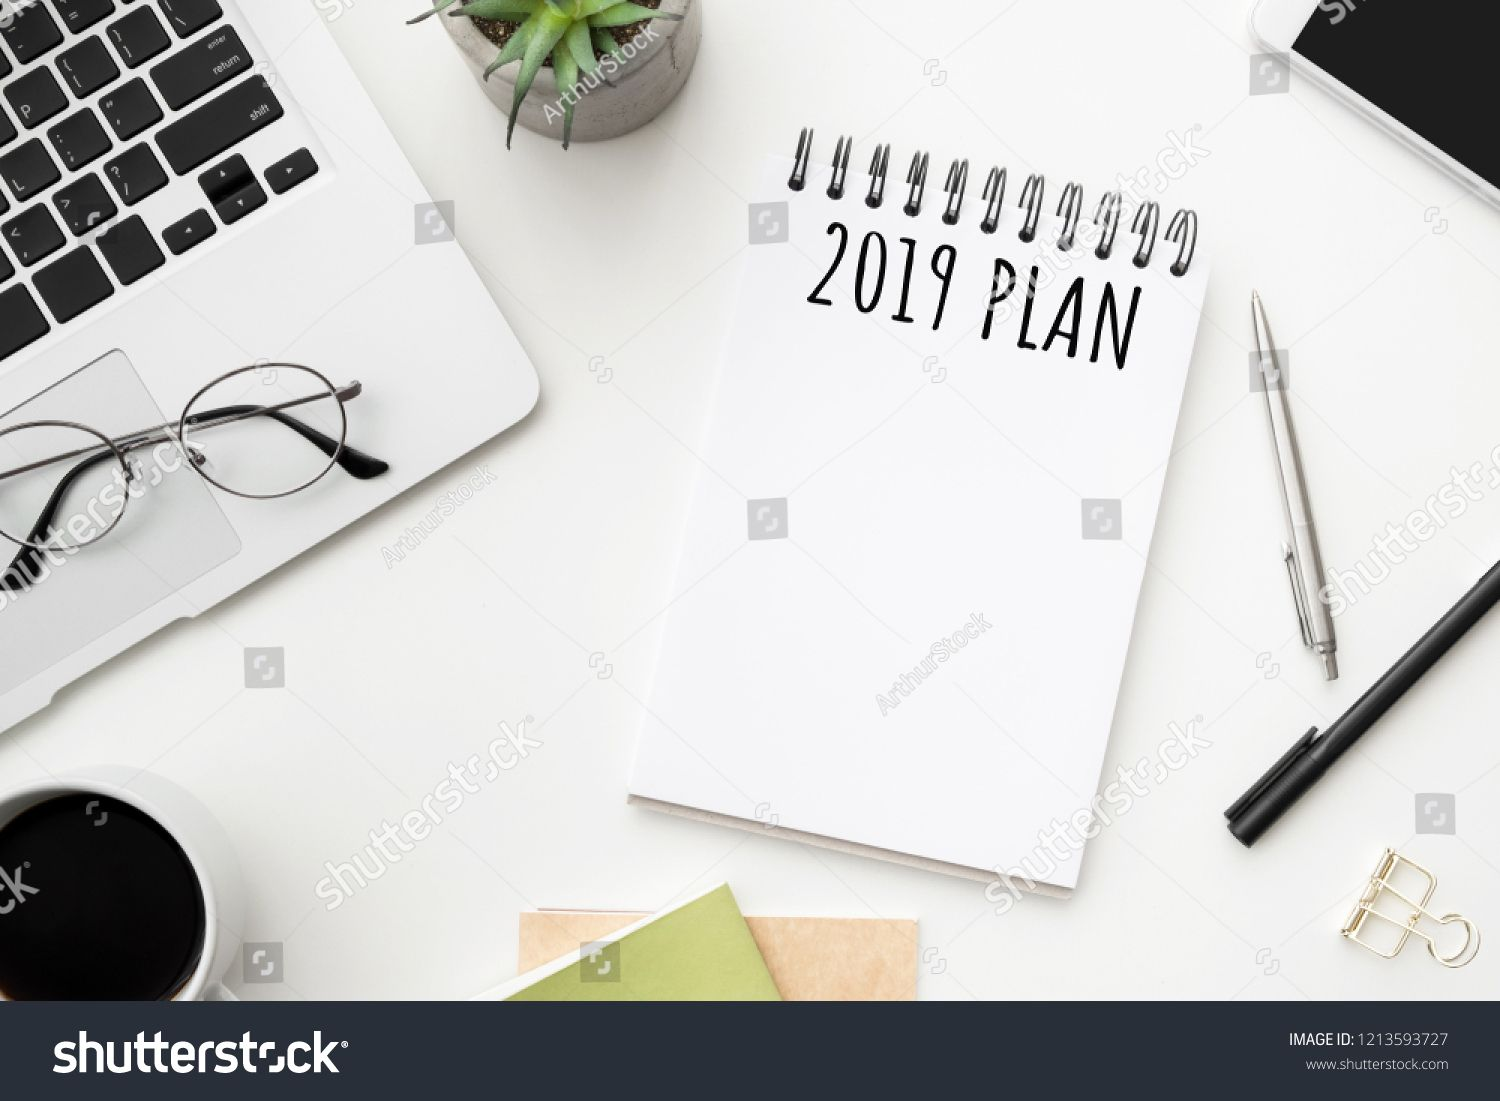 Notebook Page With 2019 Plan Text On White Office Desk Table Top